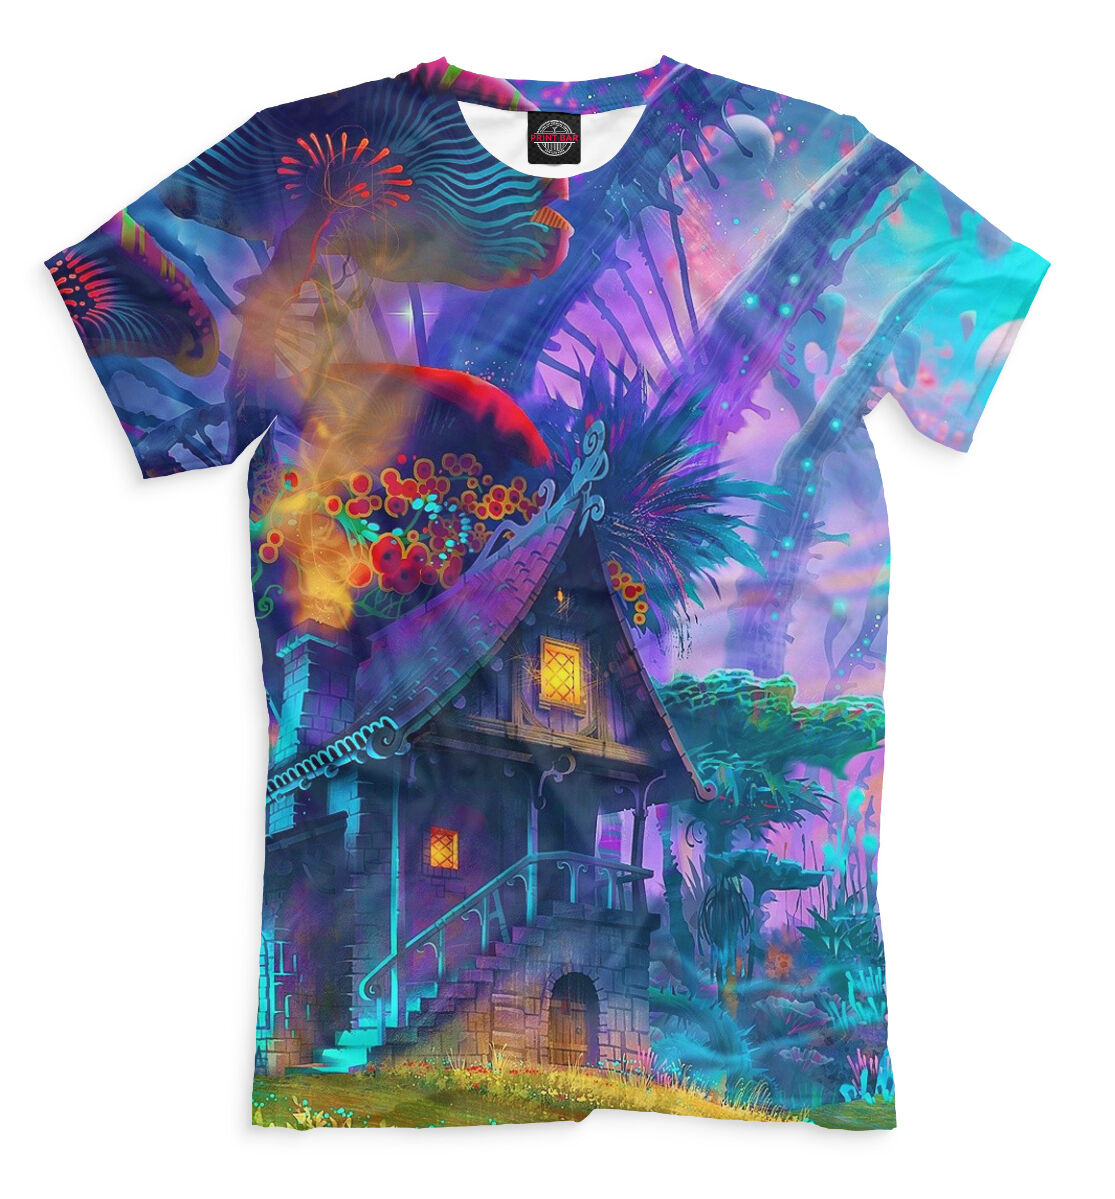 Psychedelic tee - abstract rave tshirt EDM clothing fantasy goa psy festival